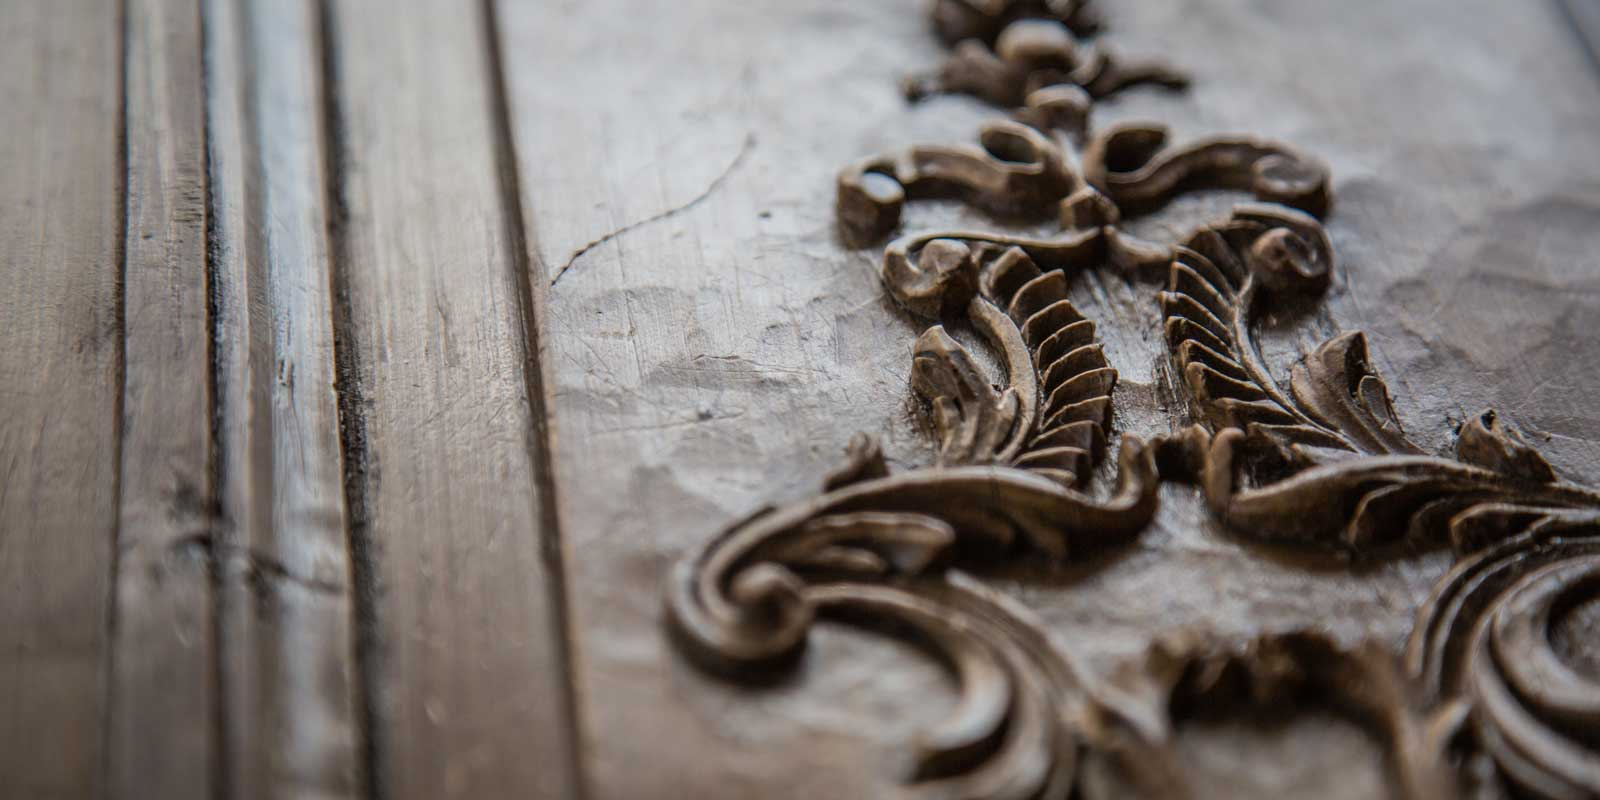 A close up of the intricate details in the wood showing toolmarks from the sculpter